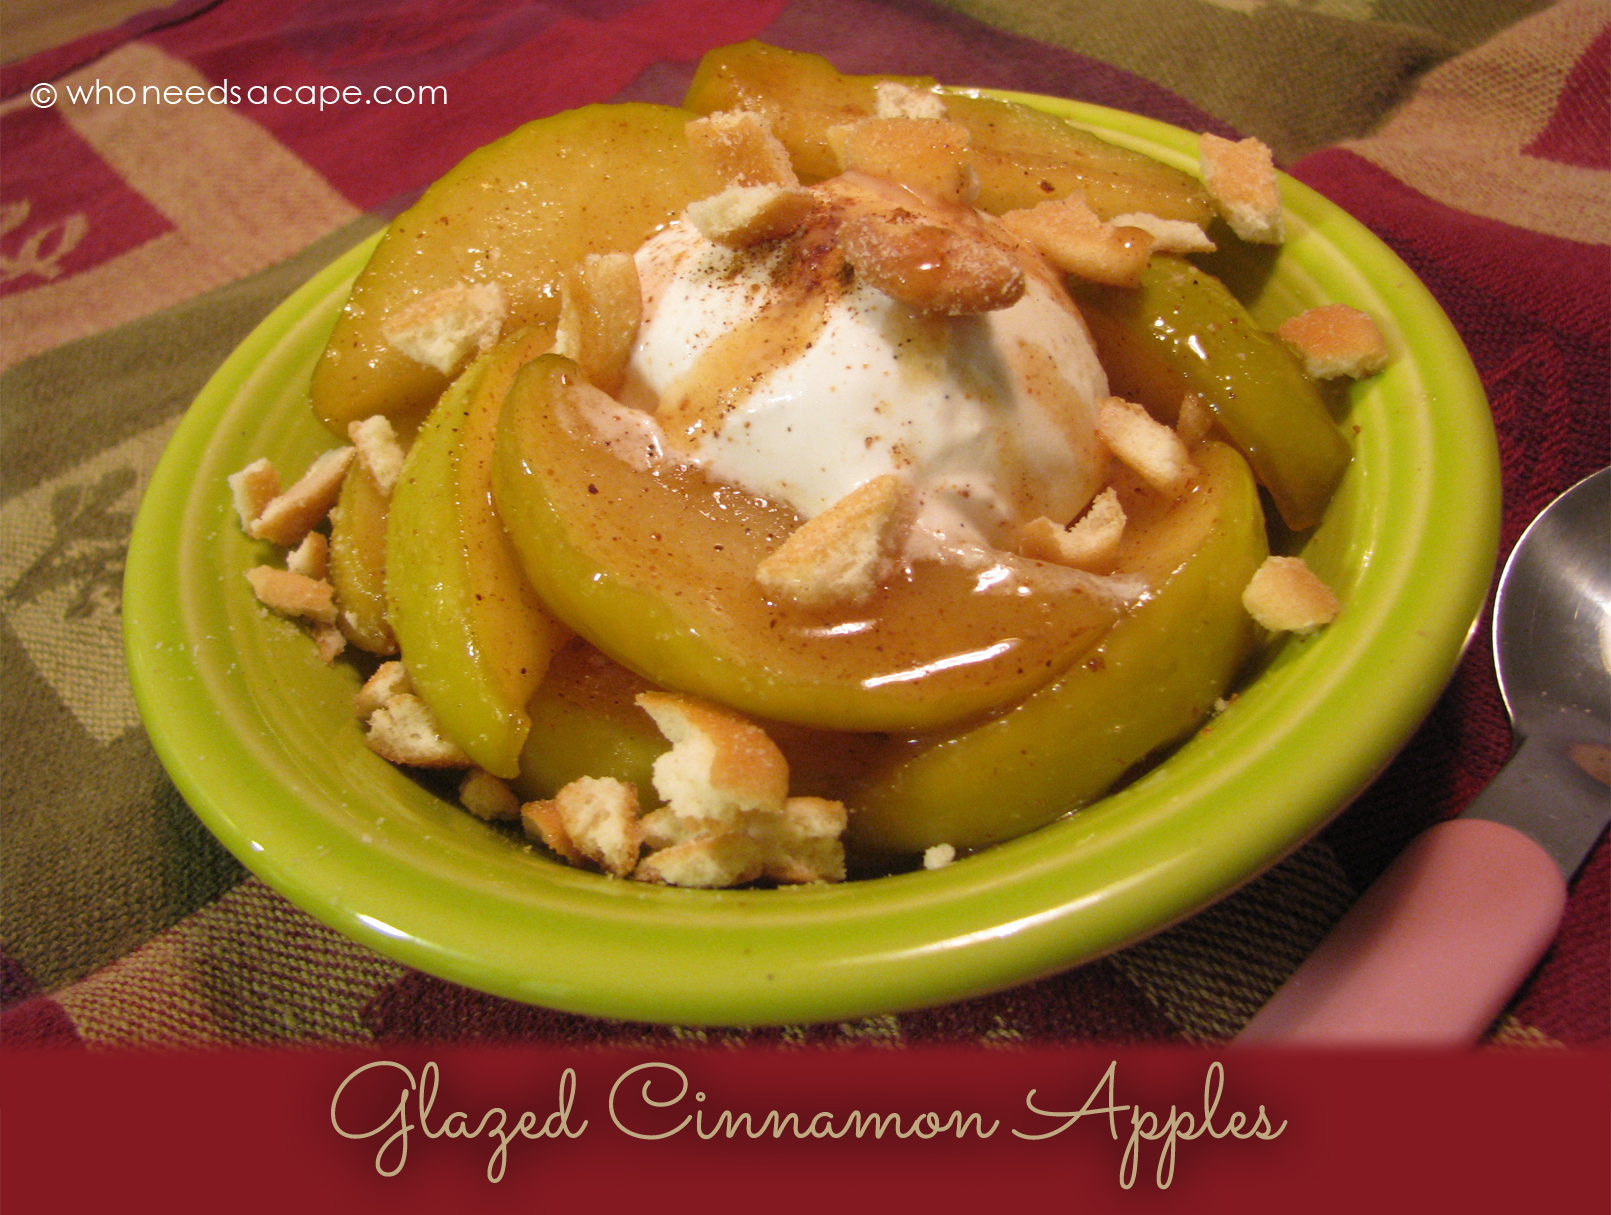 Slow Cooker Glazed Cinnamon Apples will be your new favorite dessert! Using your crockpot you'll have a fruity family favorite that everyone will love.